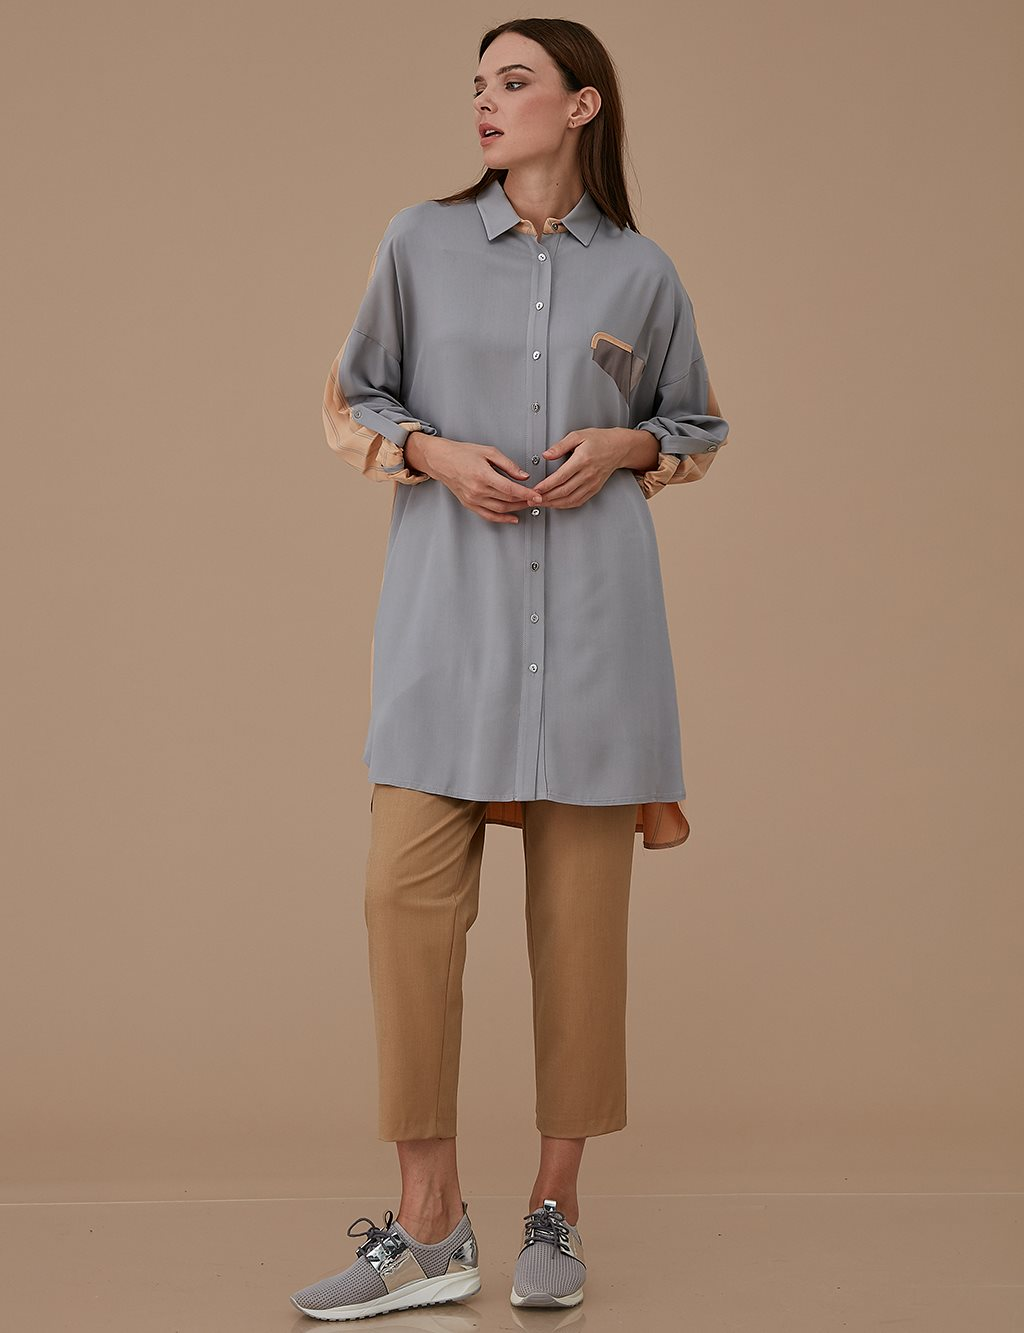 Colorful Oversize Tunic A9 21193 Grey